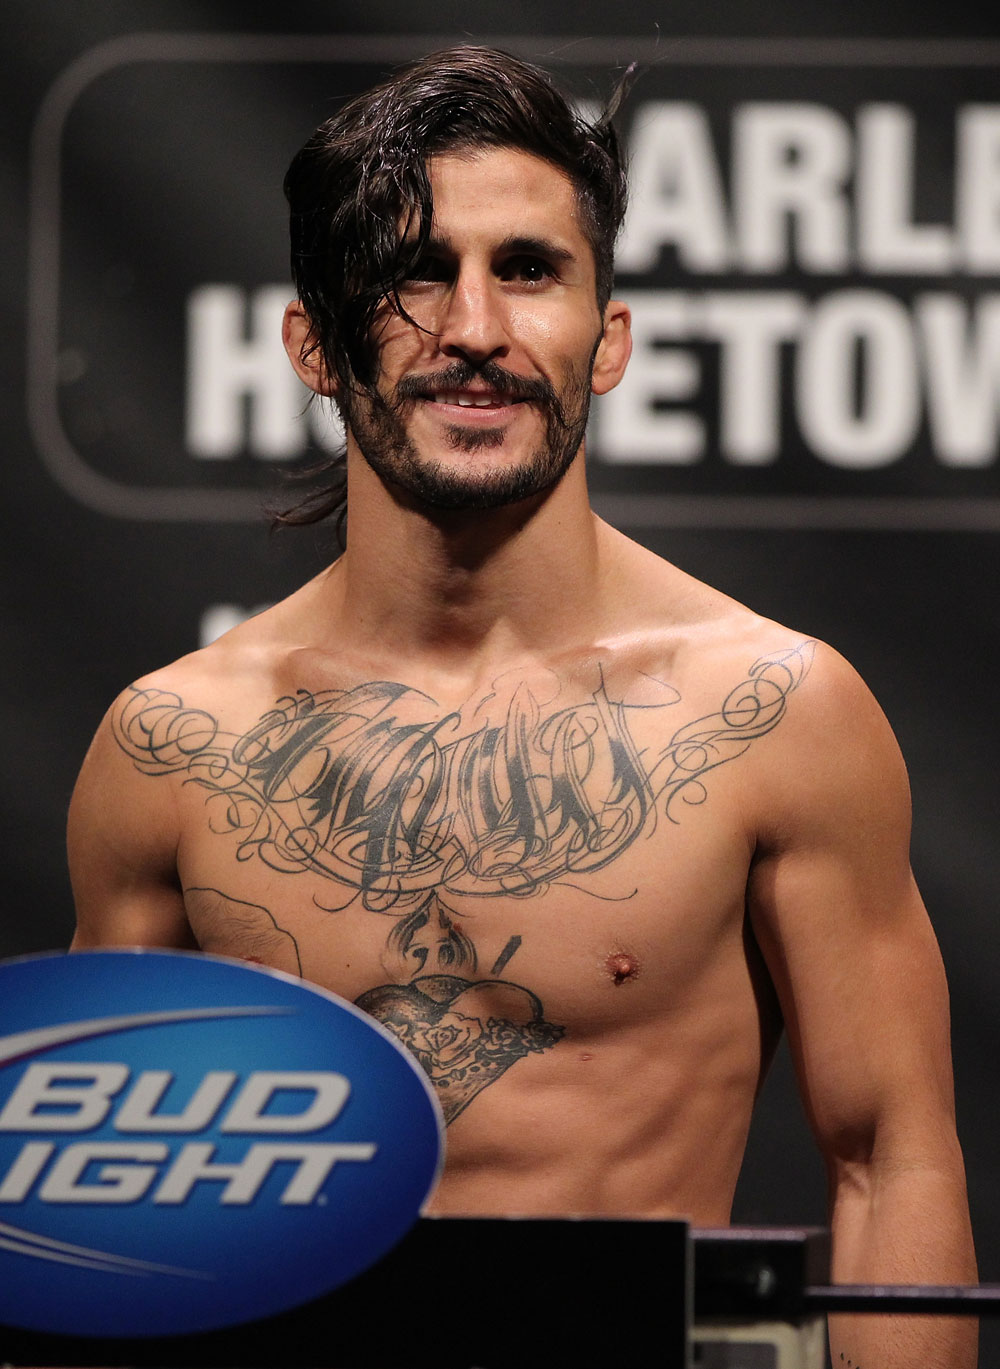 SUNRISE, FL - JUNE 07:   Ian McCall makes weight during the UFC on FX 3 official weigh in at Bank Atlantic Center on June 7, 2012 in Sunrise, Florida.  (Photo by Josh Hedges/Zuffa LLC/Zuffa LLC via Getty Images)